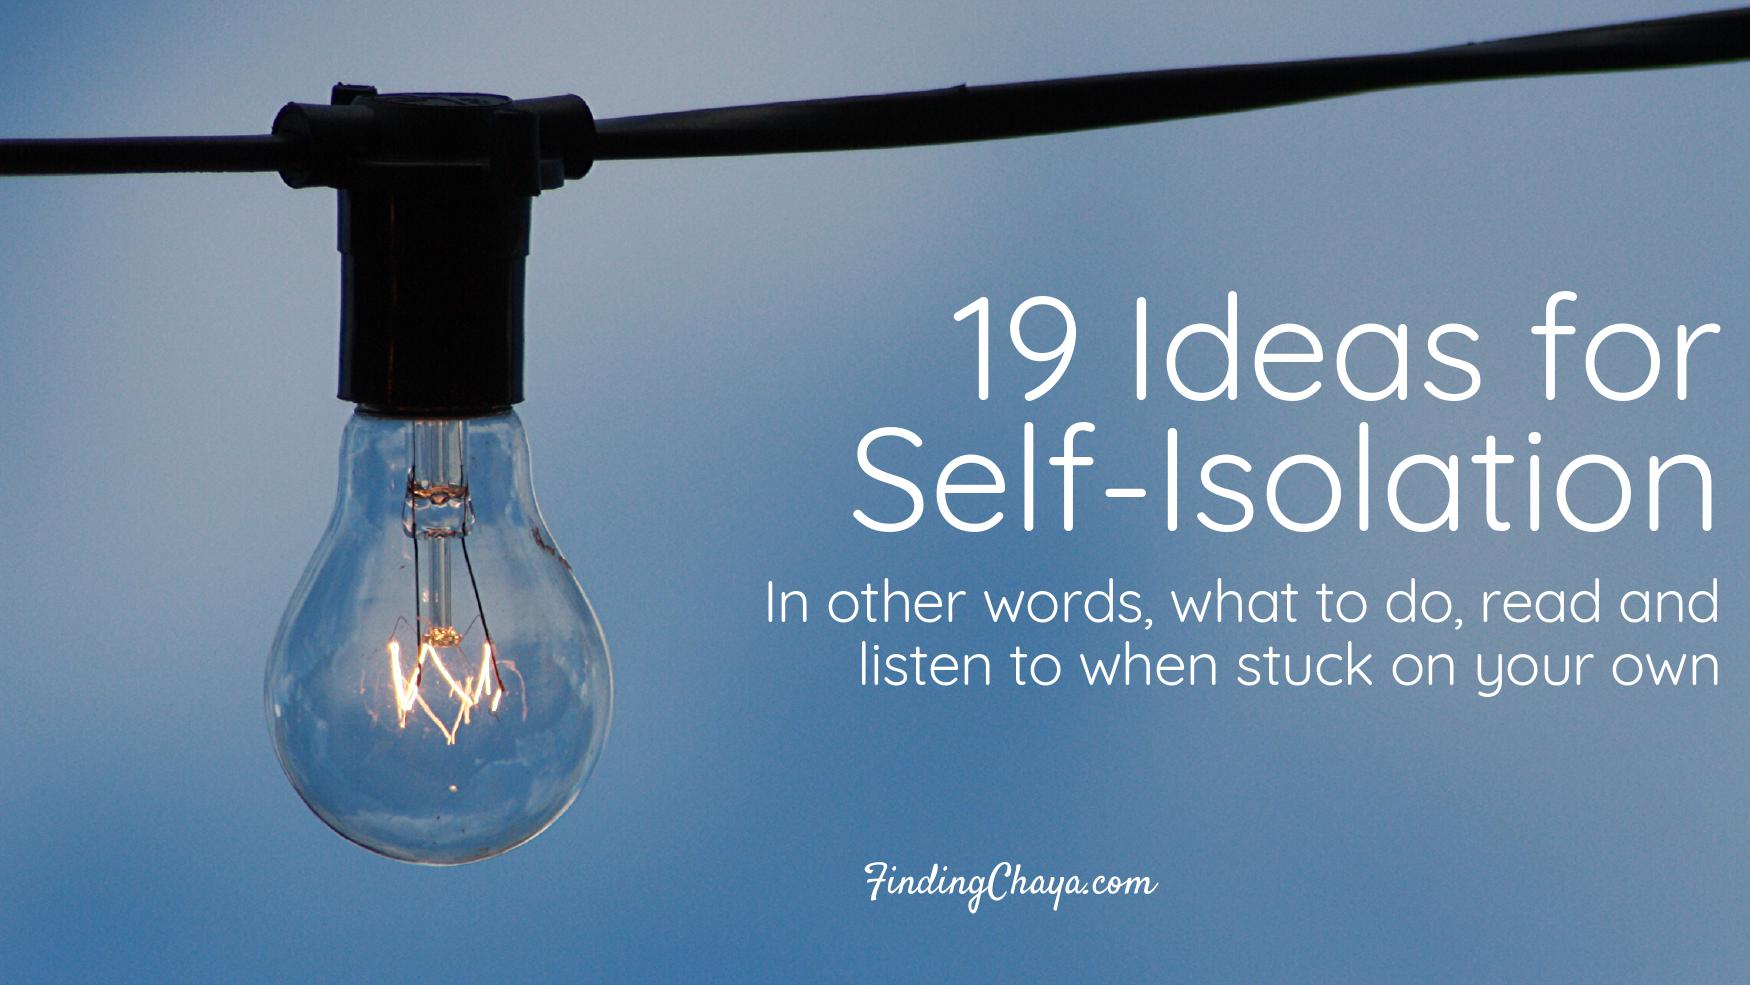 19 Ideas for Self-Isolation (in other words, what to do, read and listen to when stuck on your own)